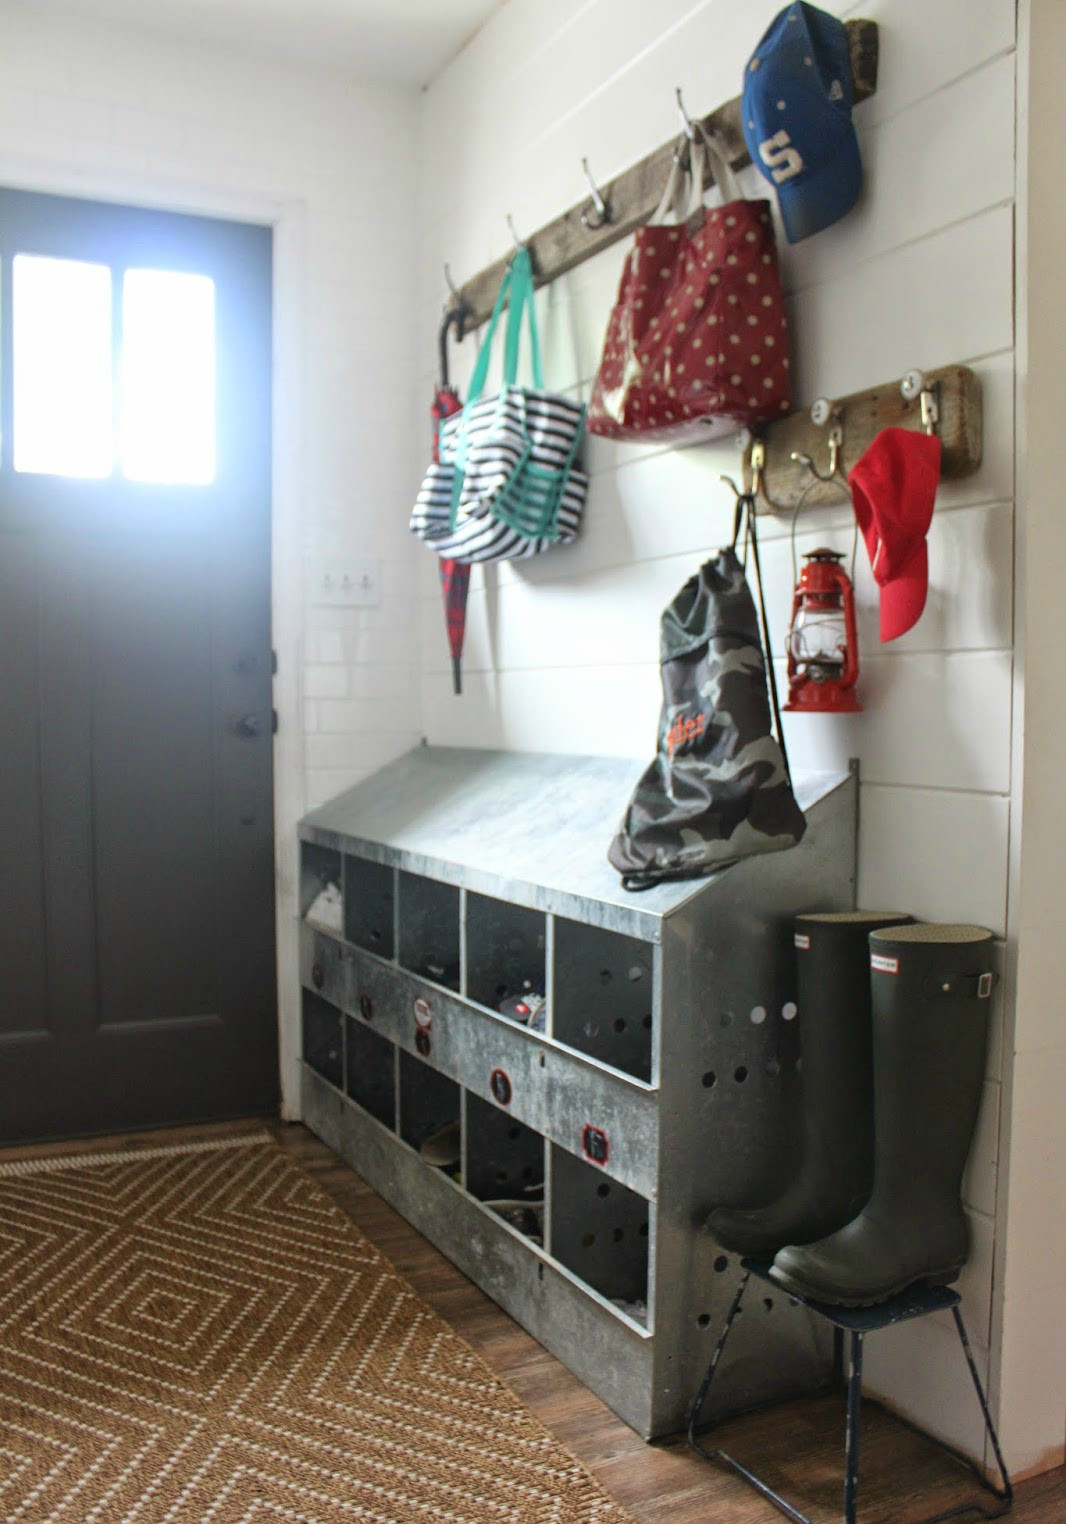 Quick and easy home decorating ideas #71. Repurposed Chicken Nesting Boxes Into Fantastic Home Decor